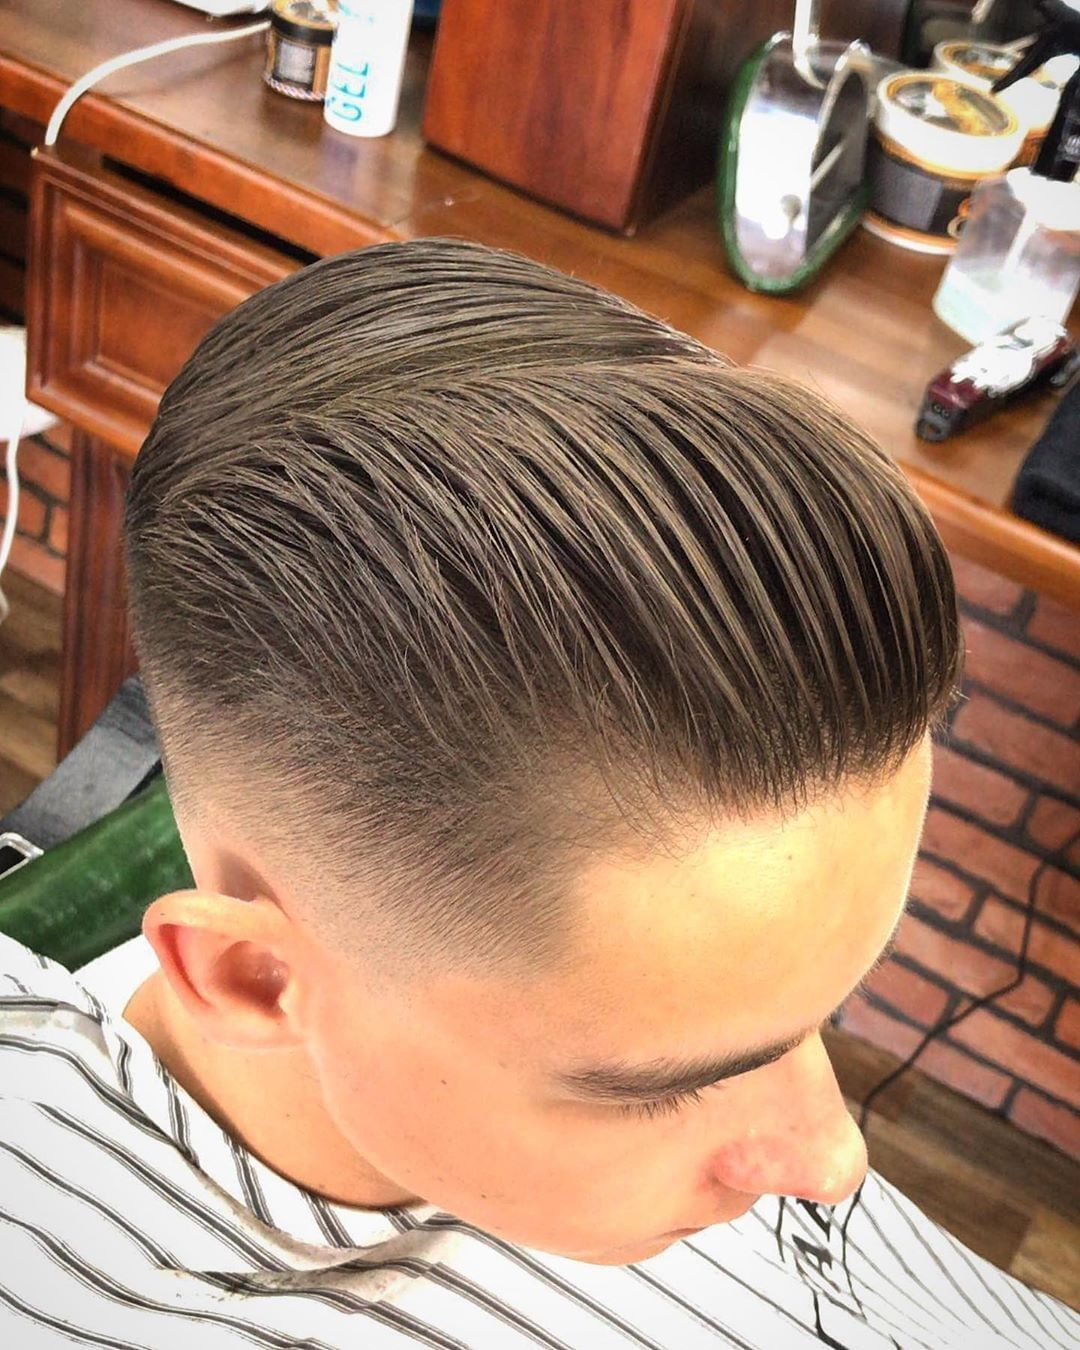 Verified Check Out This Clean Matte Finish By Antonio Barbero Using Firme Clay Suavecito Barber Brylcreem Hairstyles Hair Pomade Barber